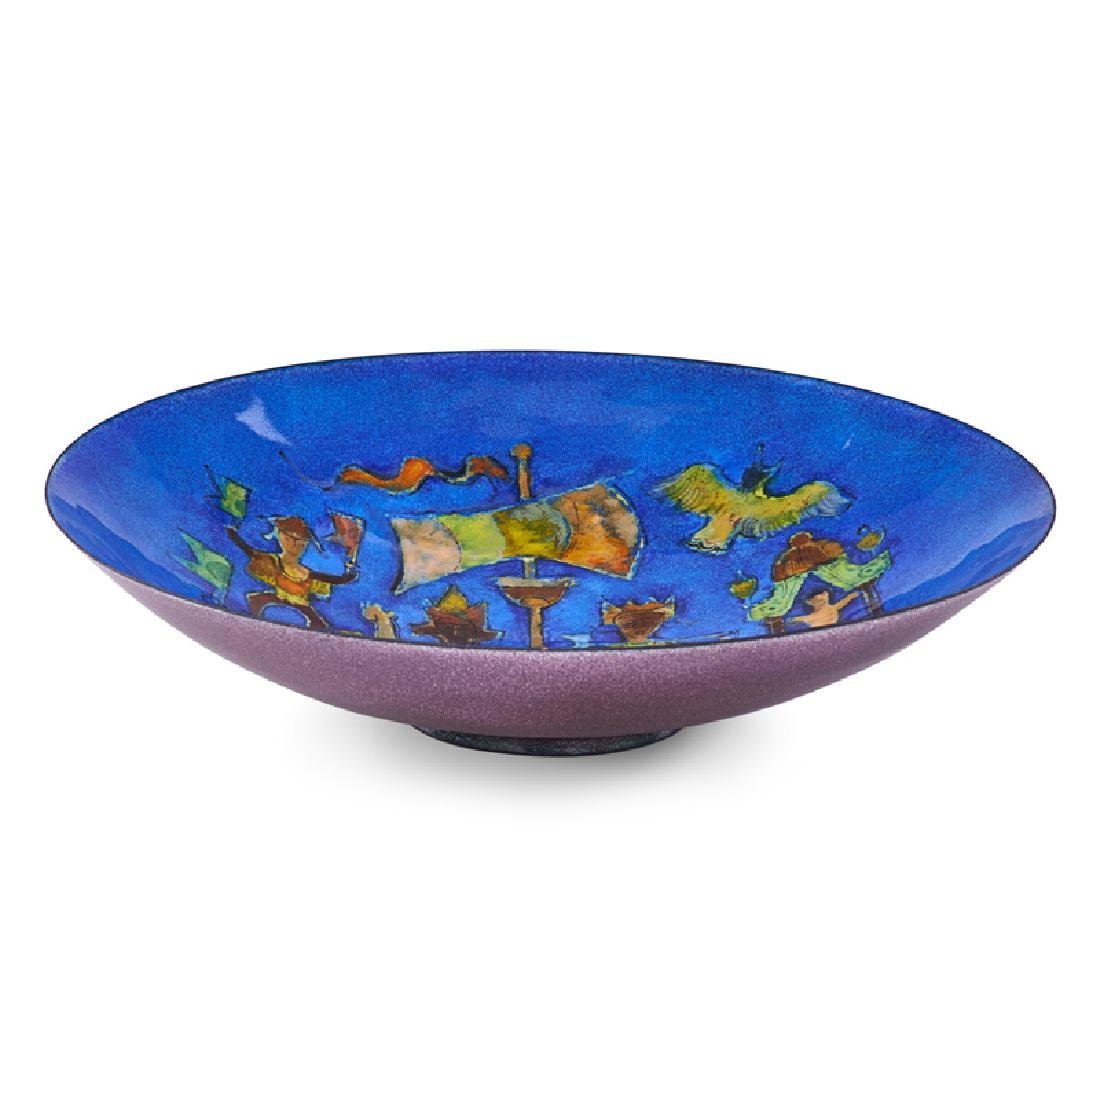 KARL DRERUP Enameled bowl with ship - 2